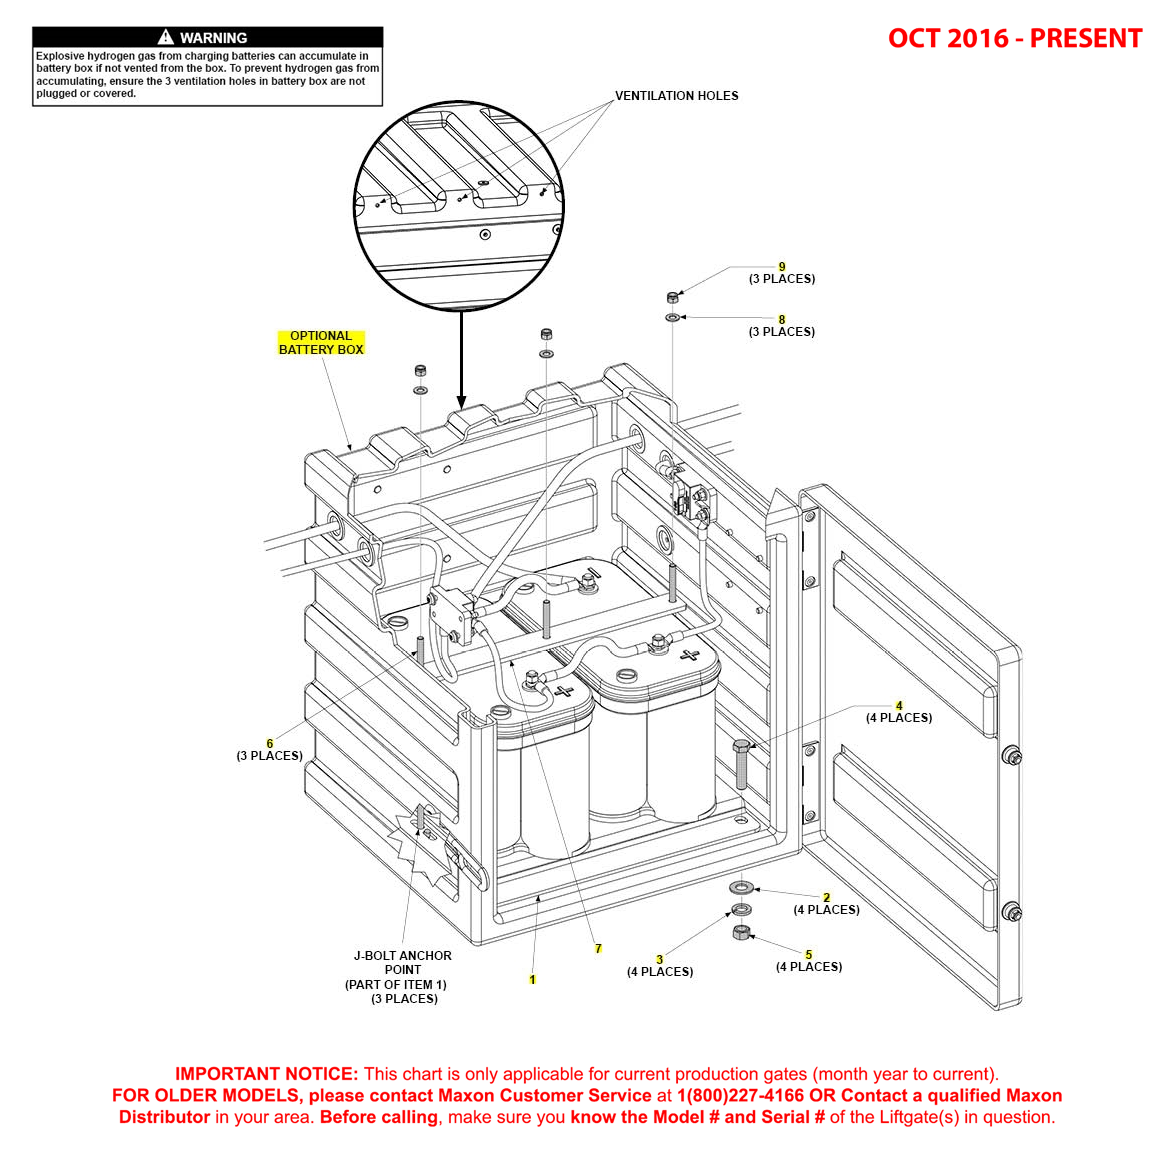 BMR (Oct 2016 - Present) Optional Battery Box Assembly Diagram